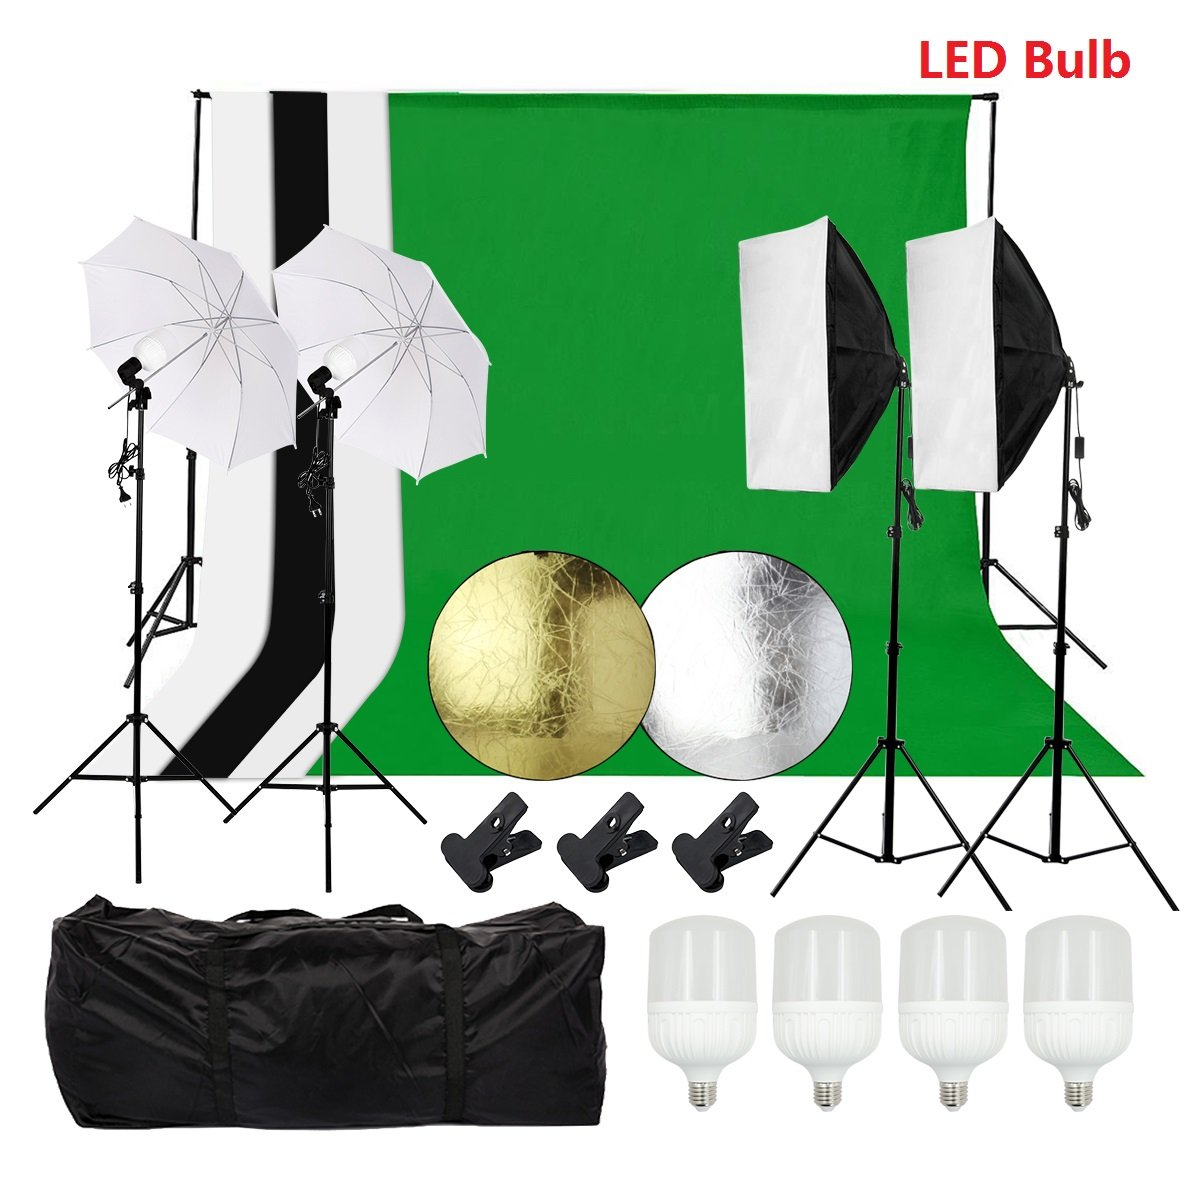 Photo Studio Set Photography Lighting Kit with 6.6ft x 9.8ft Backdrops Umbrellas Softbox Continuous Lighting Kit Light Reflector with LED Bulb for Video and Portrait Lighting for Beginners by Grandekor